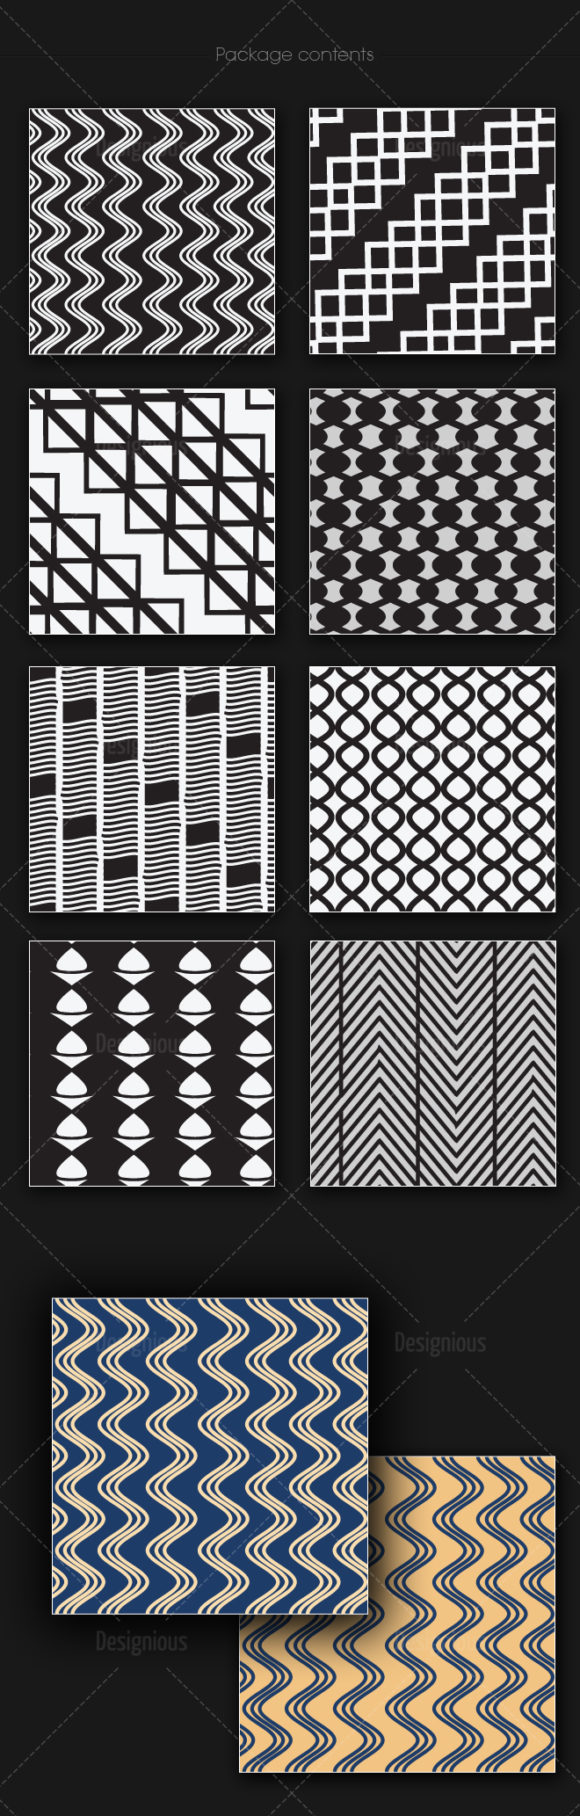 Seamless Patterns Vector Pack 158 6